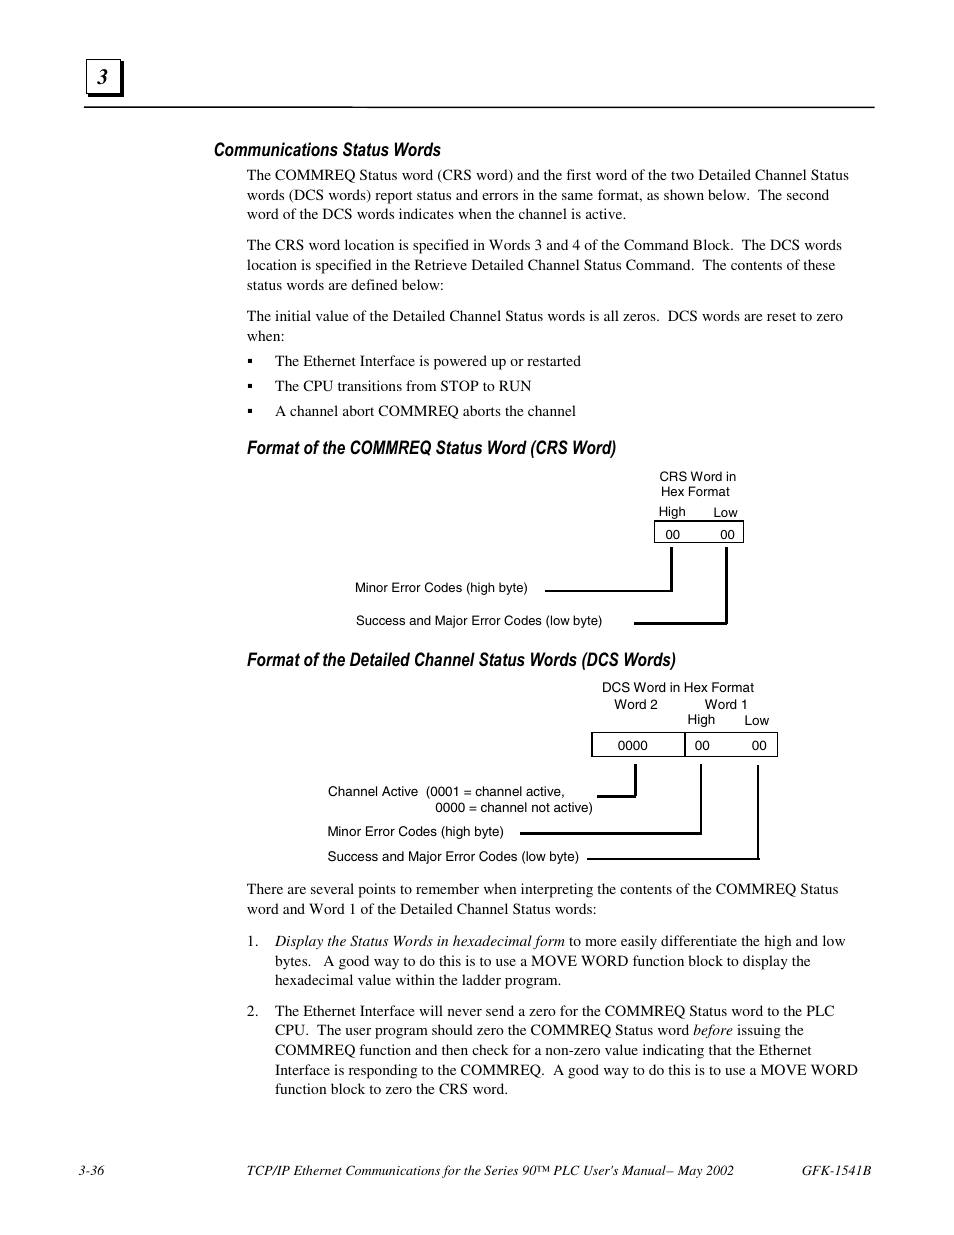 Communications status words, Format of the commreq status word (crs